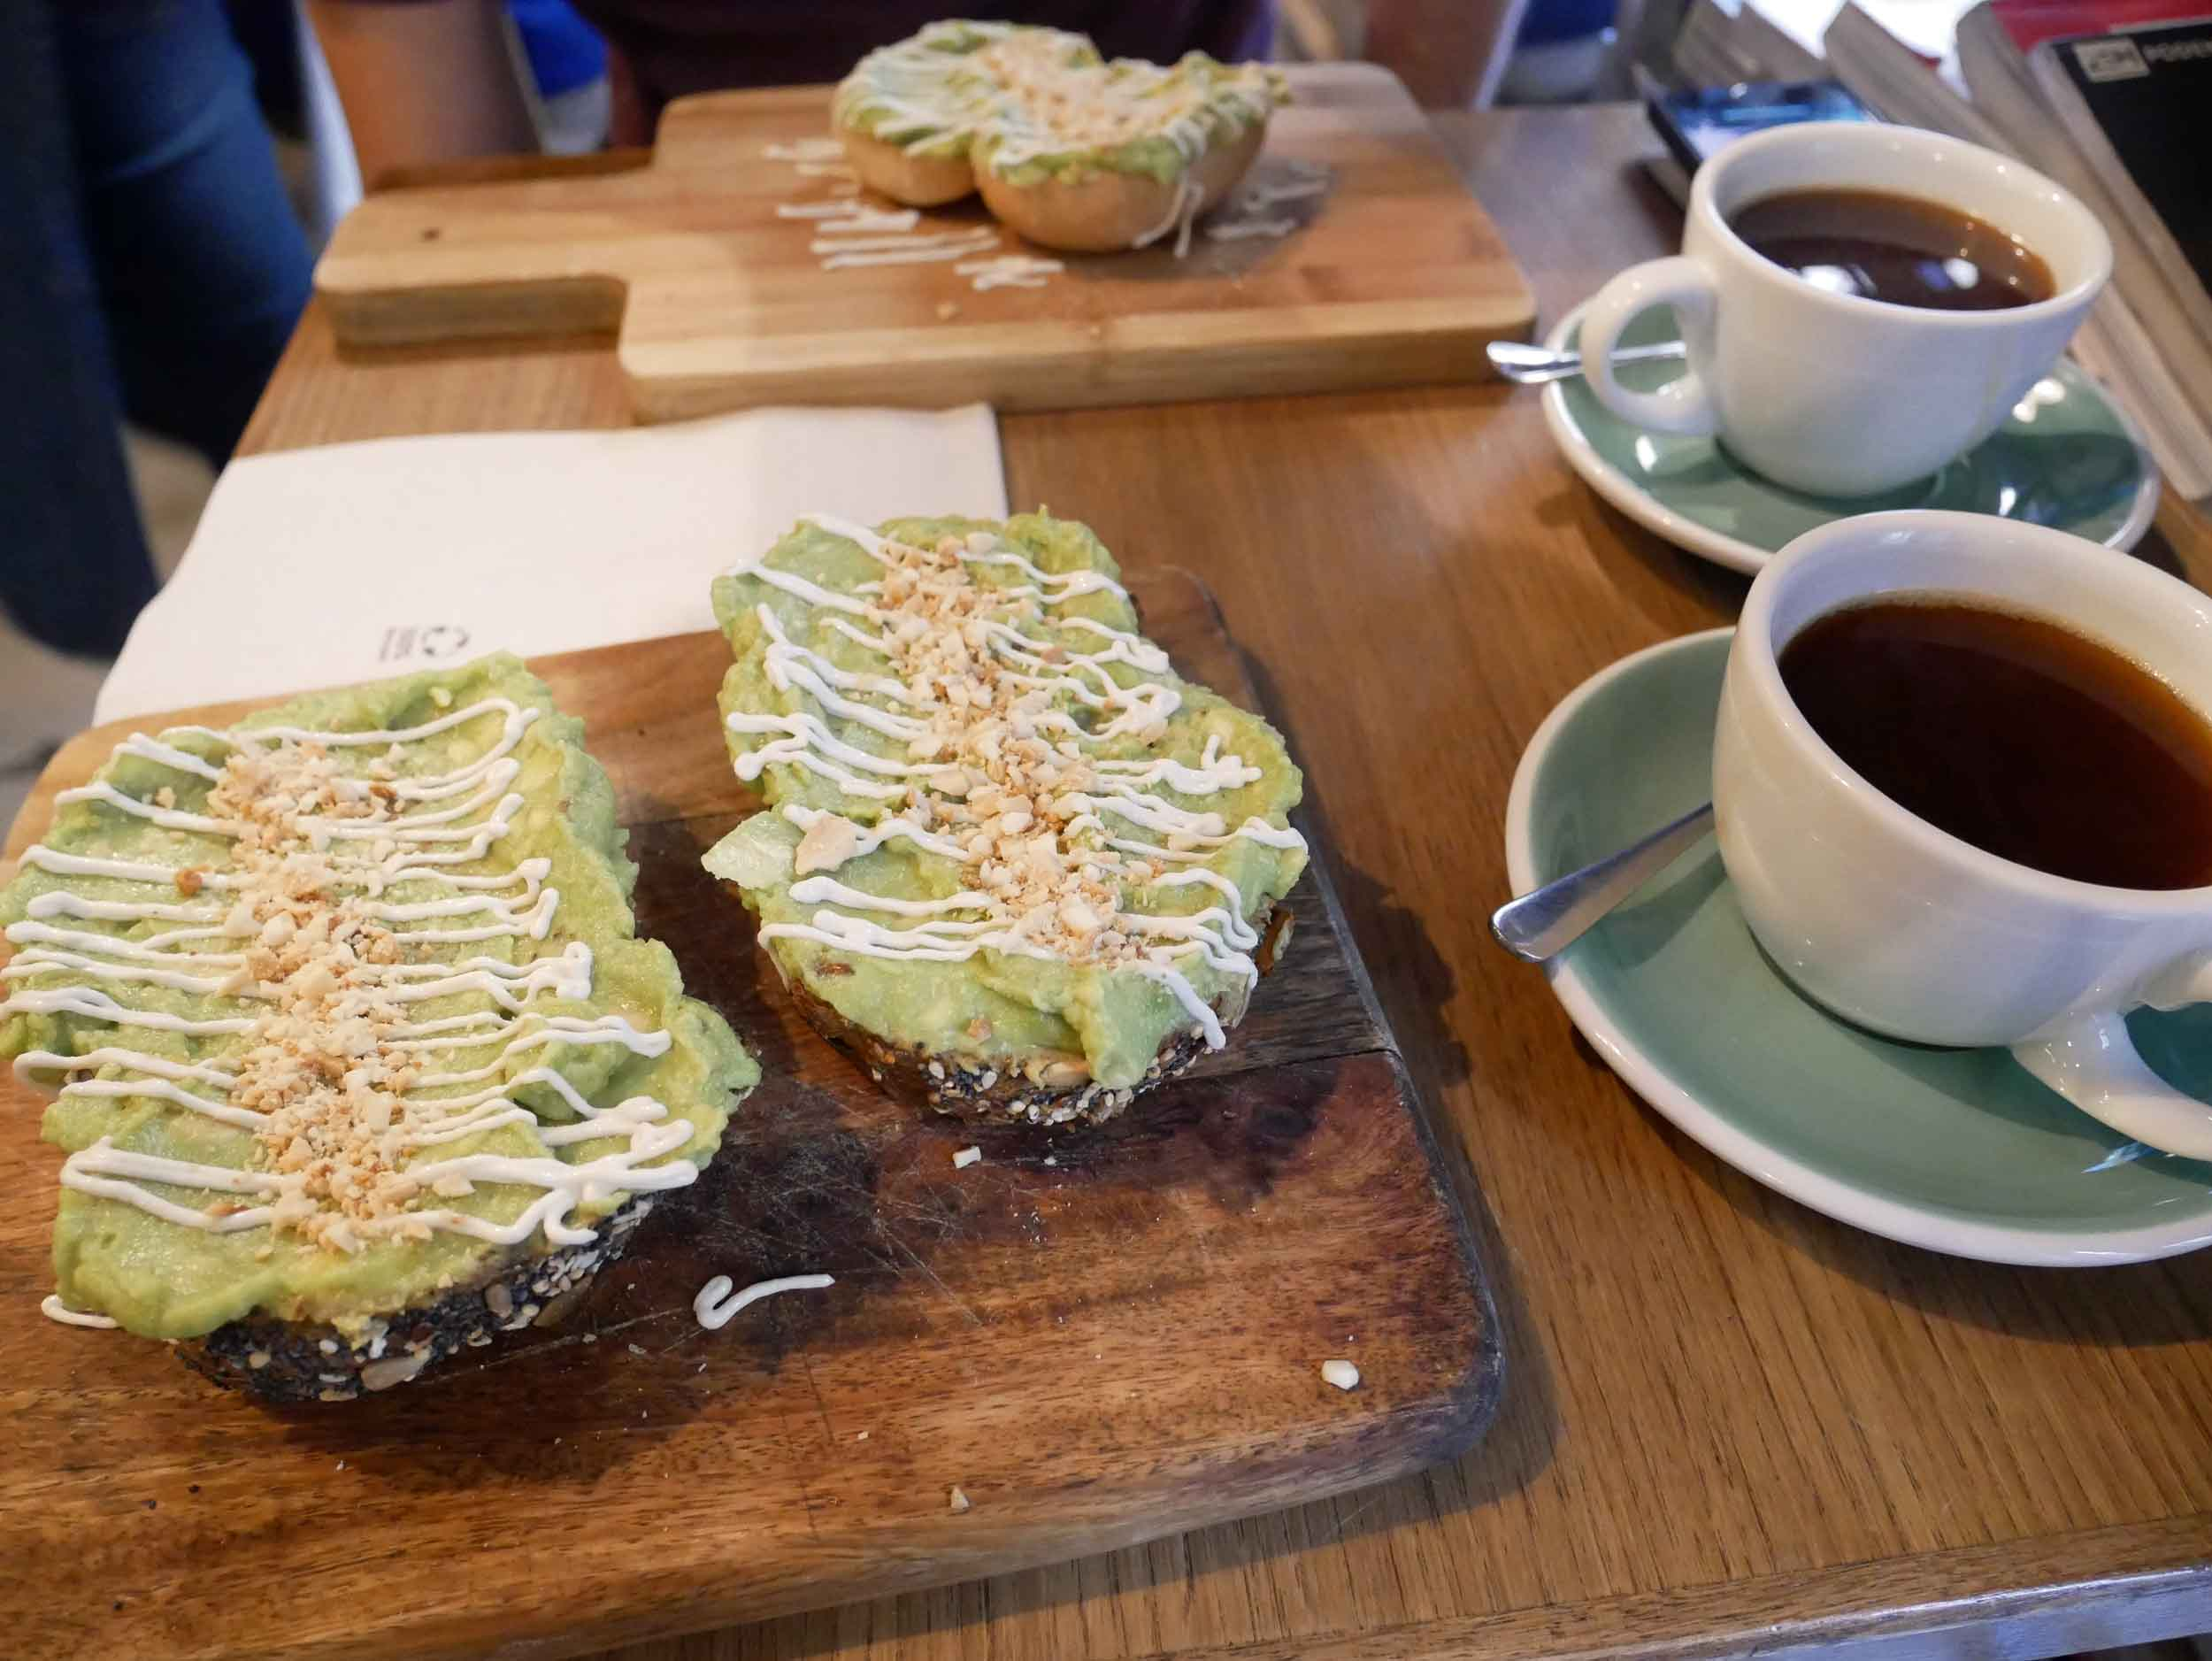 Our last breakfast in Europe of the year of avocado toast at Pum Pum (Sept 25).